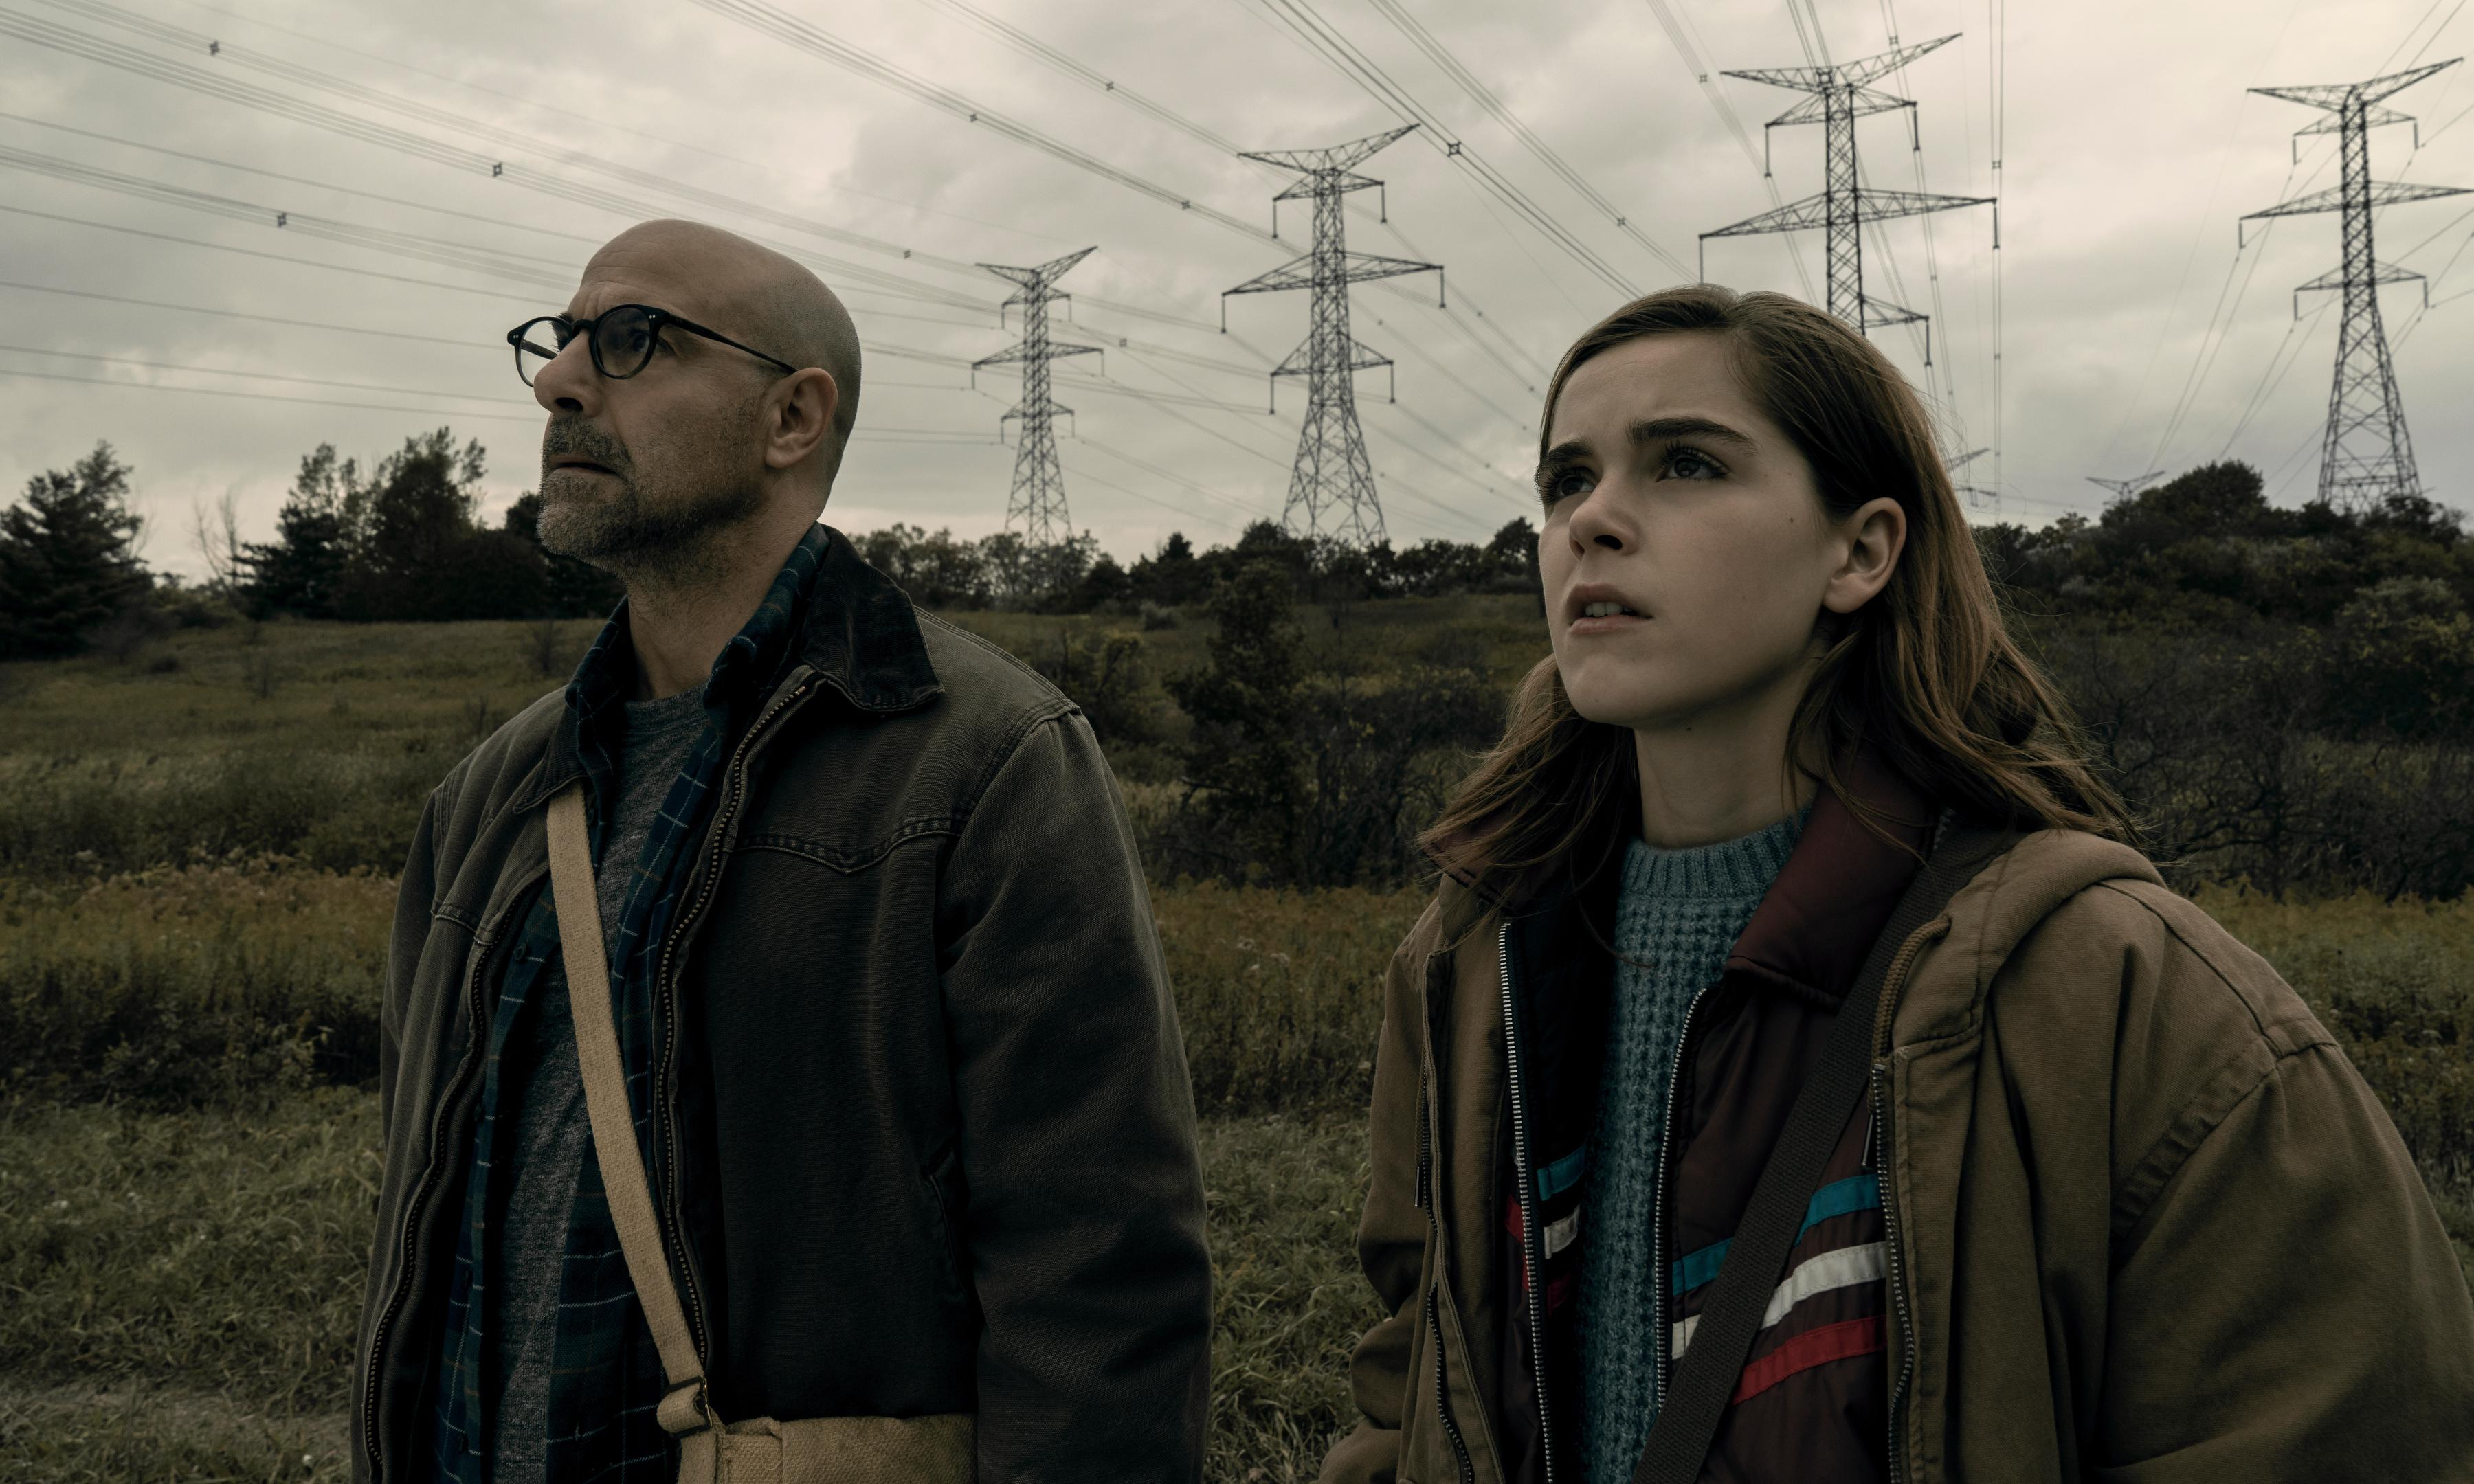 The Silence review – shoddy remix of A Quiet Place is a Netflix disaster